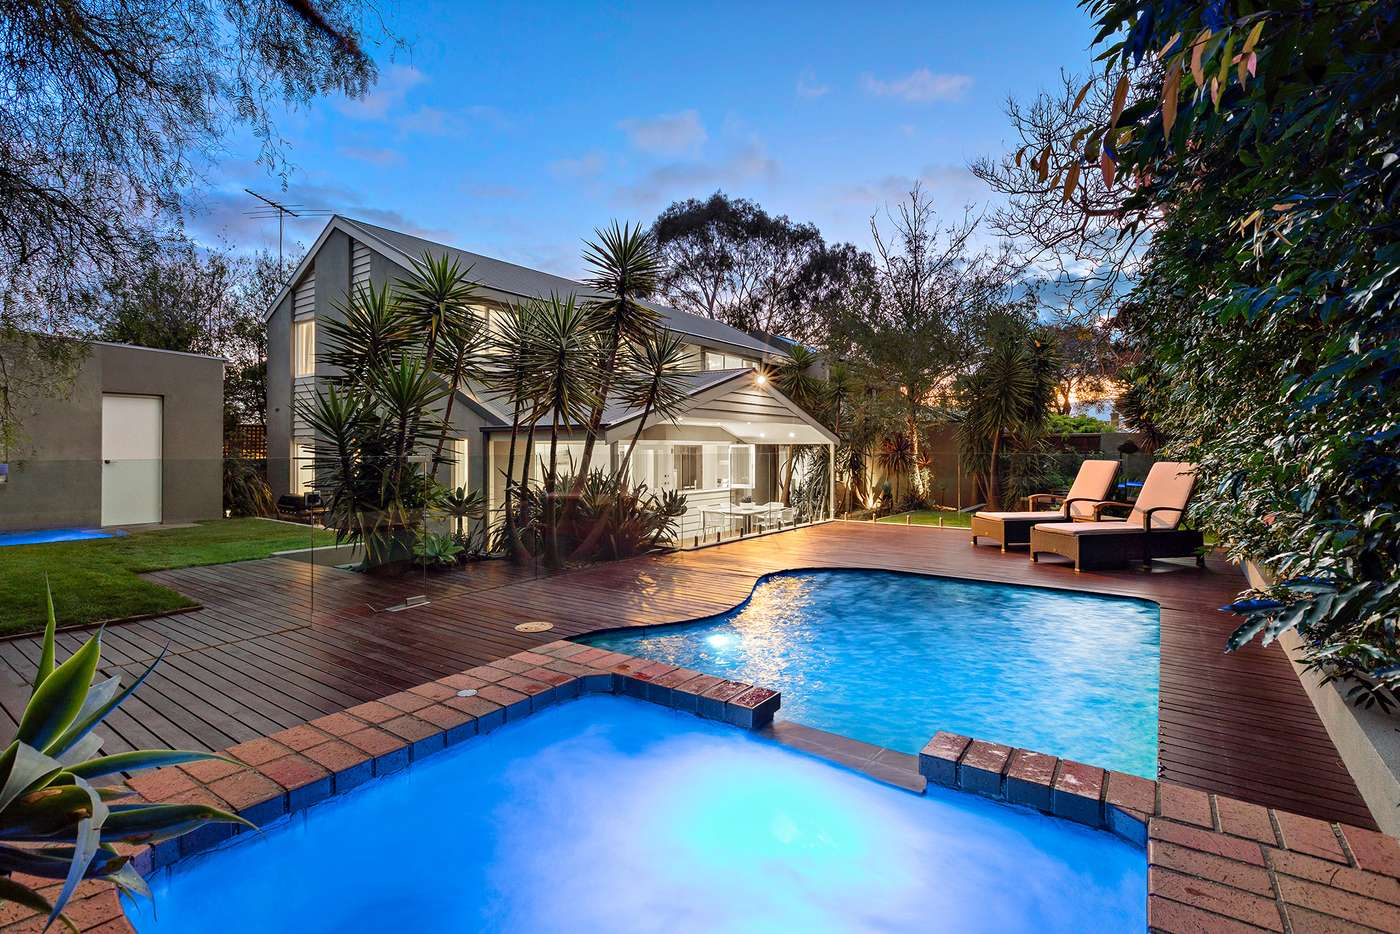 Main view of Homely house listing, 22 Queens Square, Sandringham VIC 3191